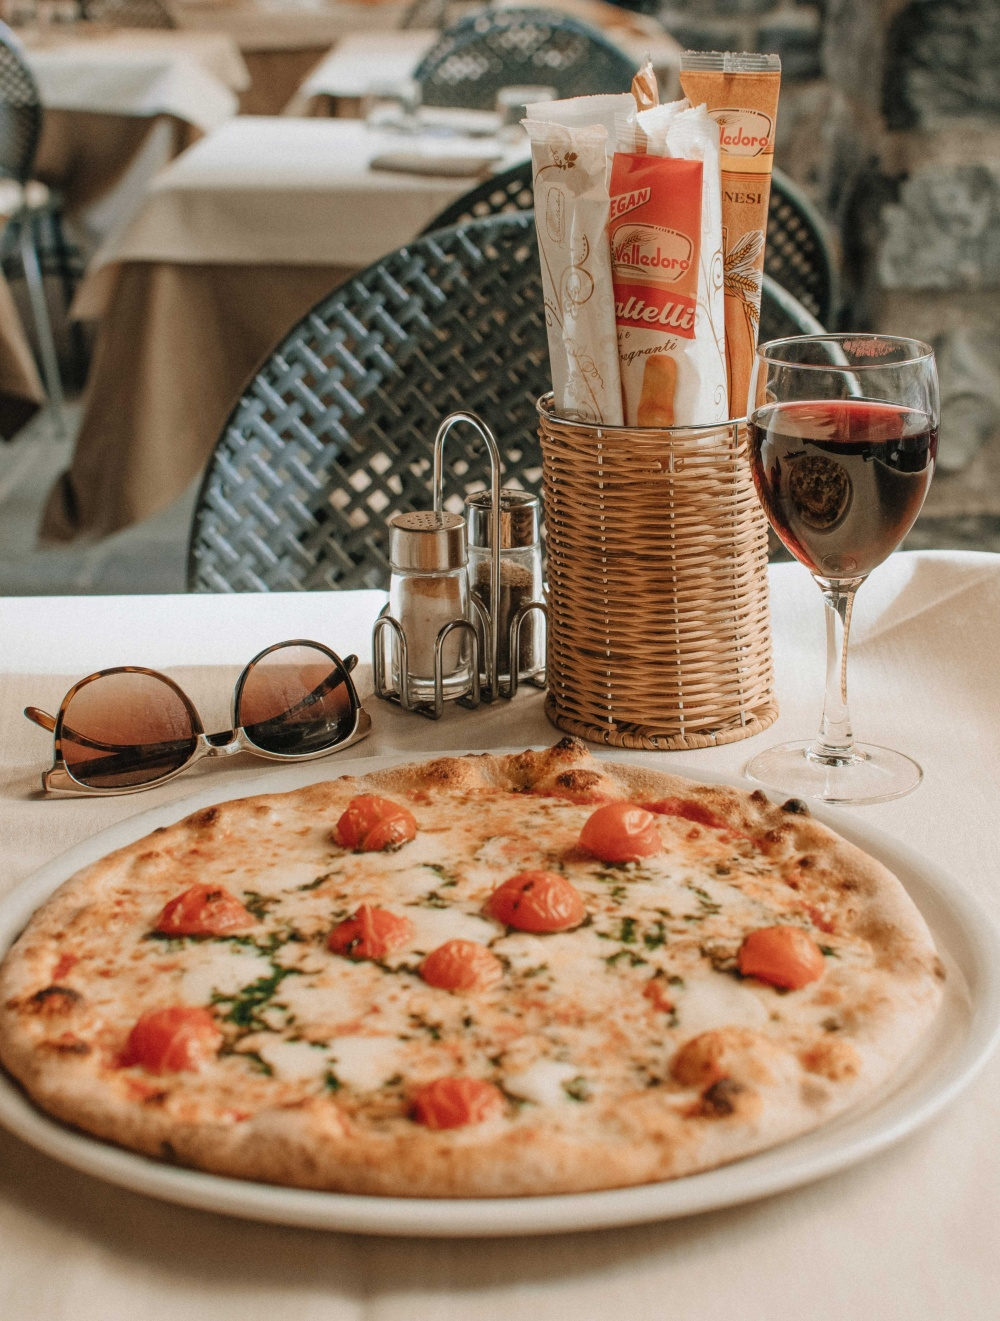 What wines pair with pizza